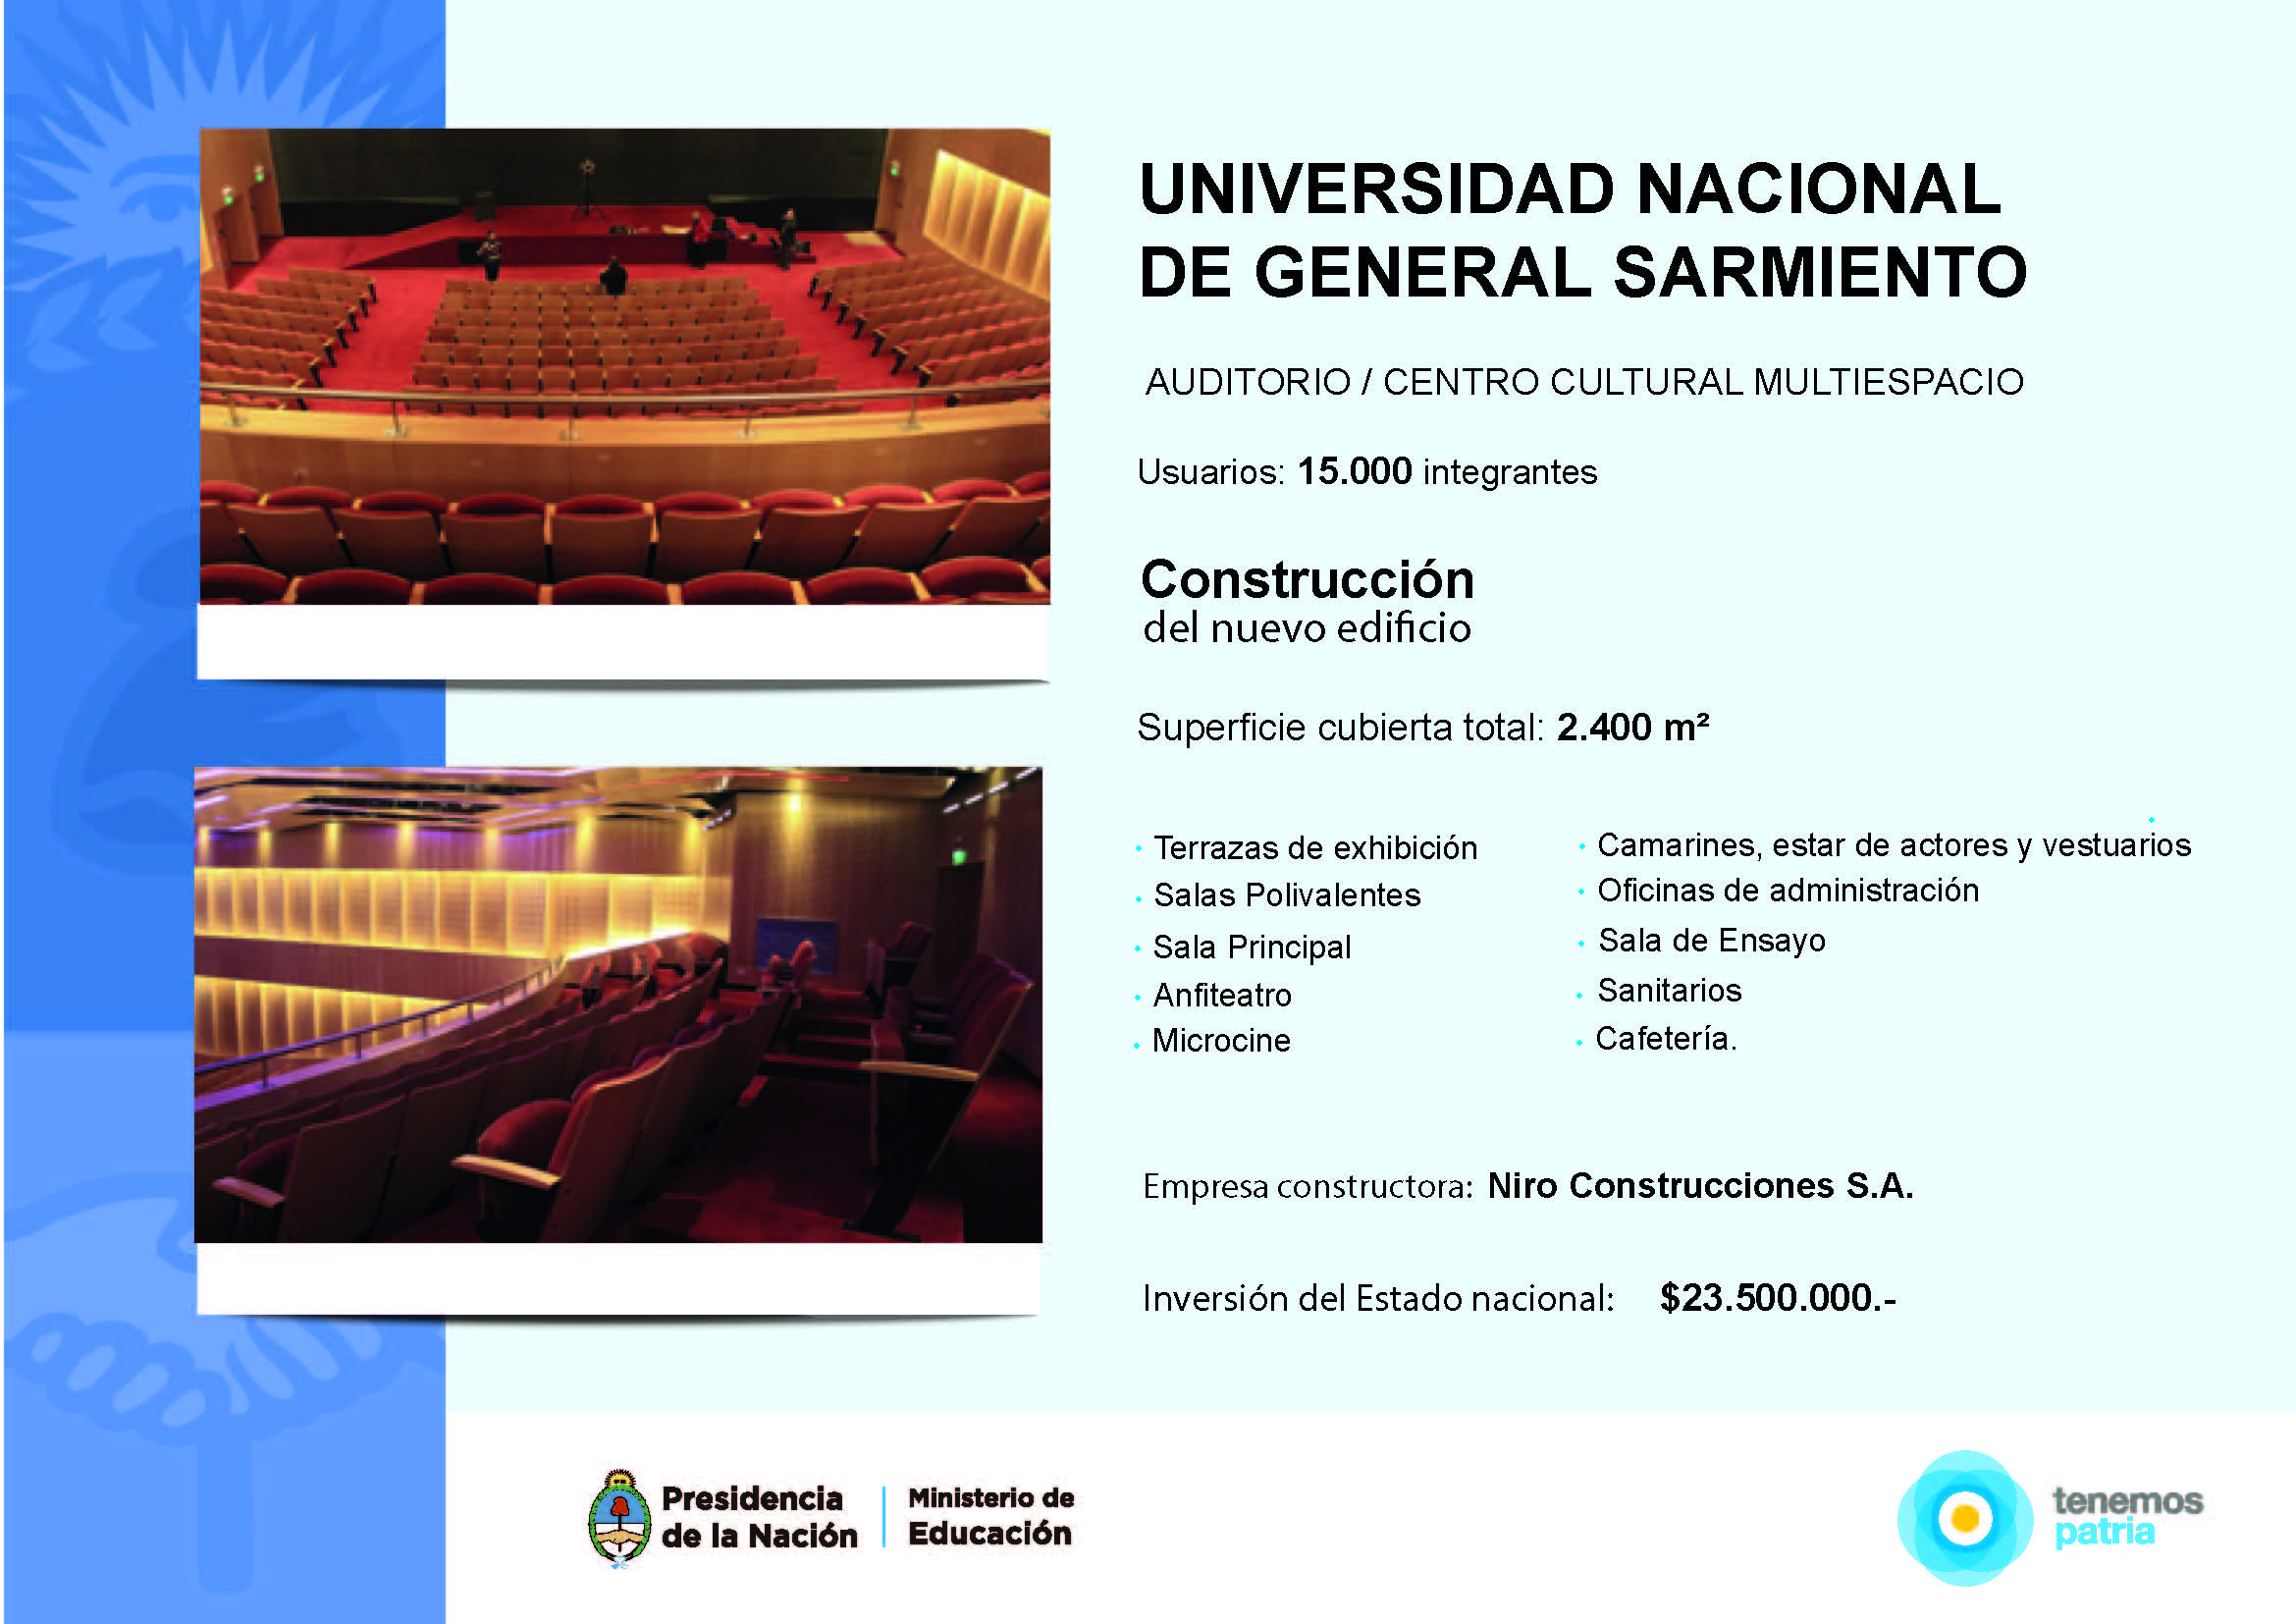 Universidad Nacional General Sarmiento